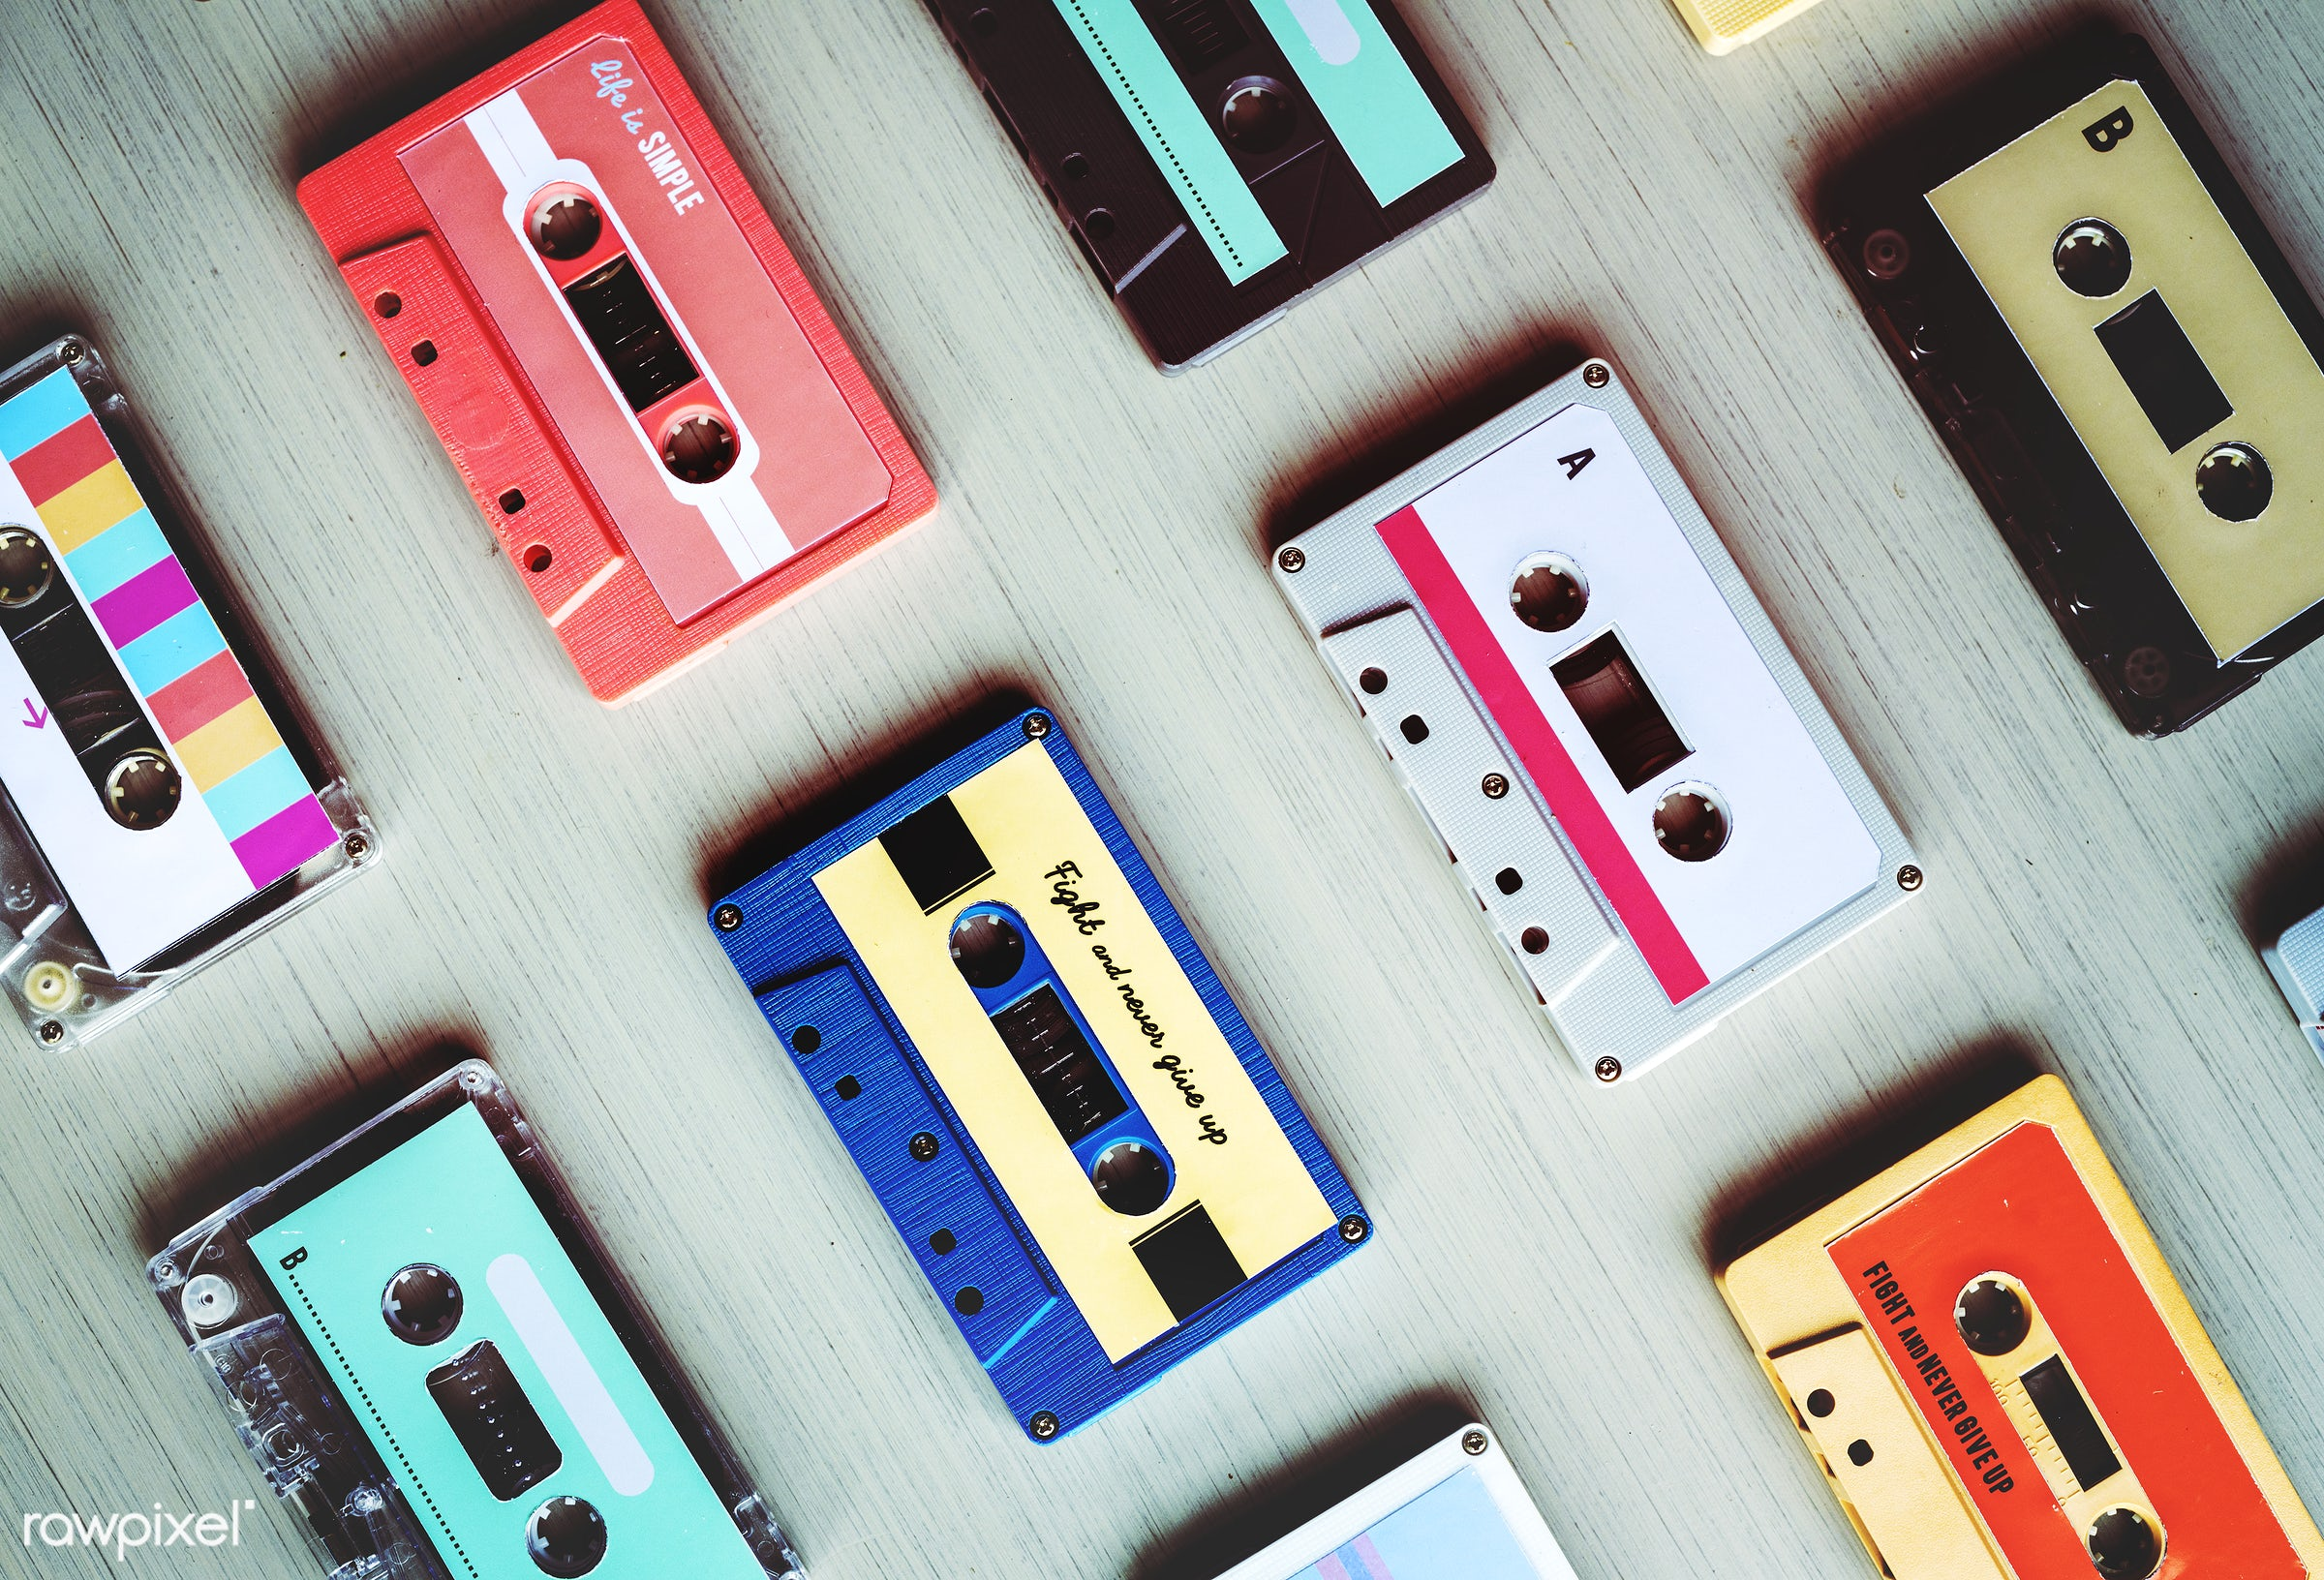 rehearsal, 80s, song, old, music taste, relax, set, retro, feels, equipment, tape, object, collection, recreation, party,...